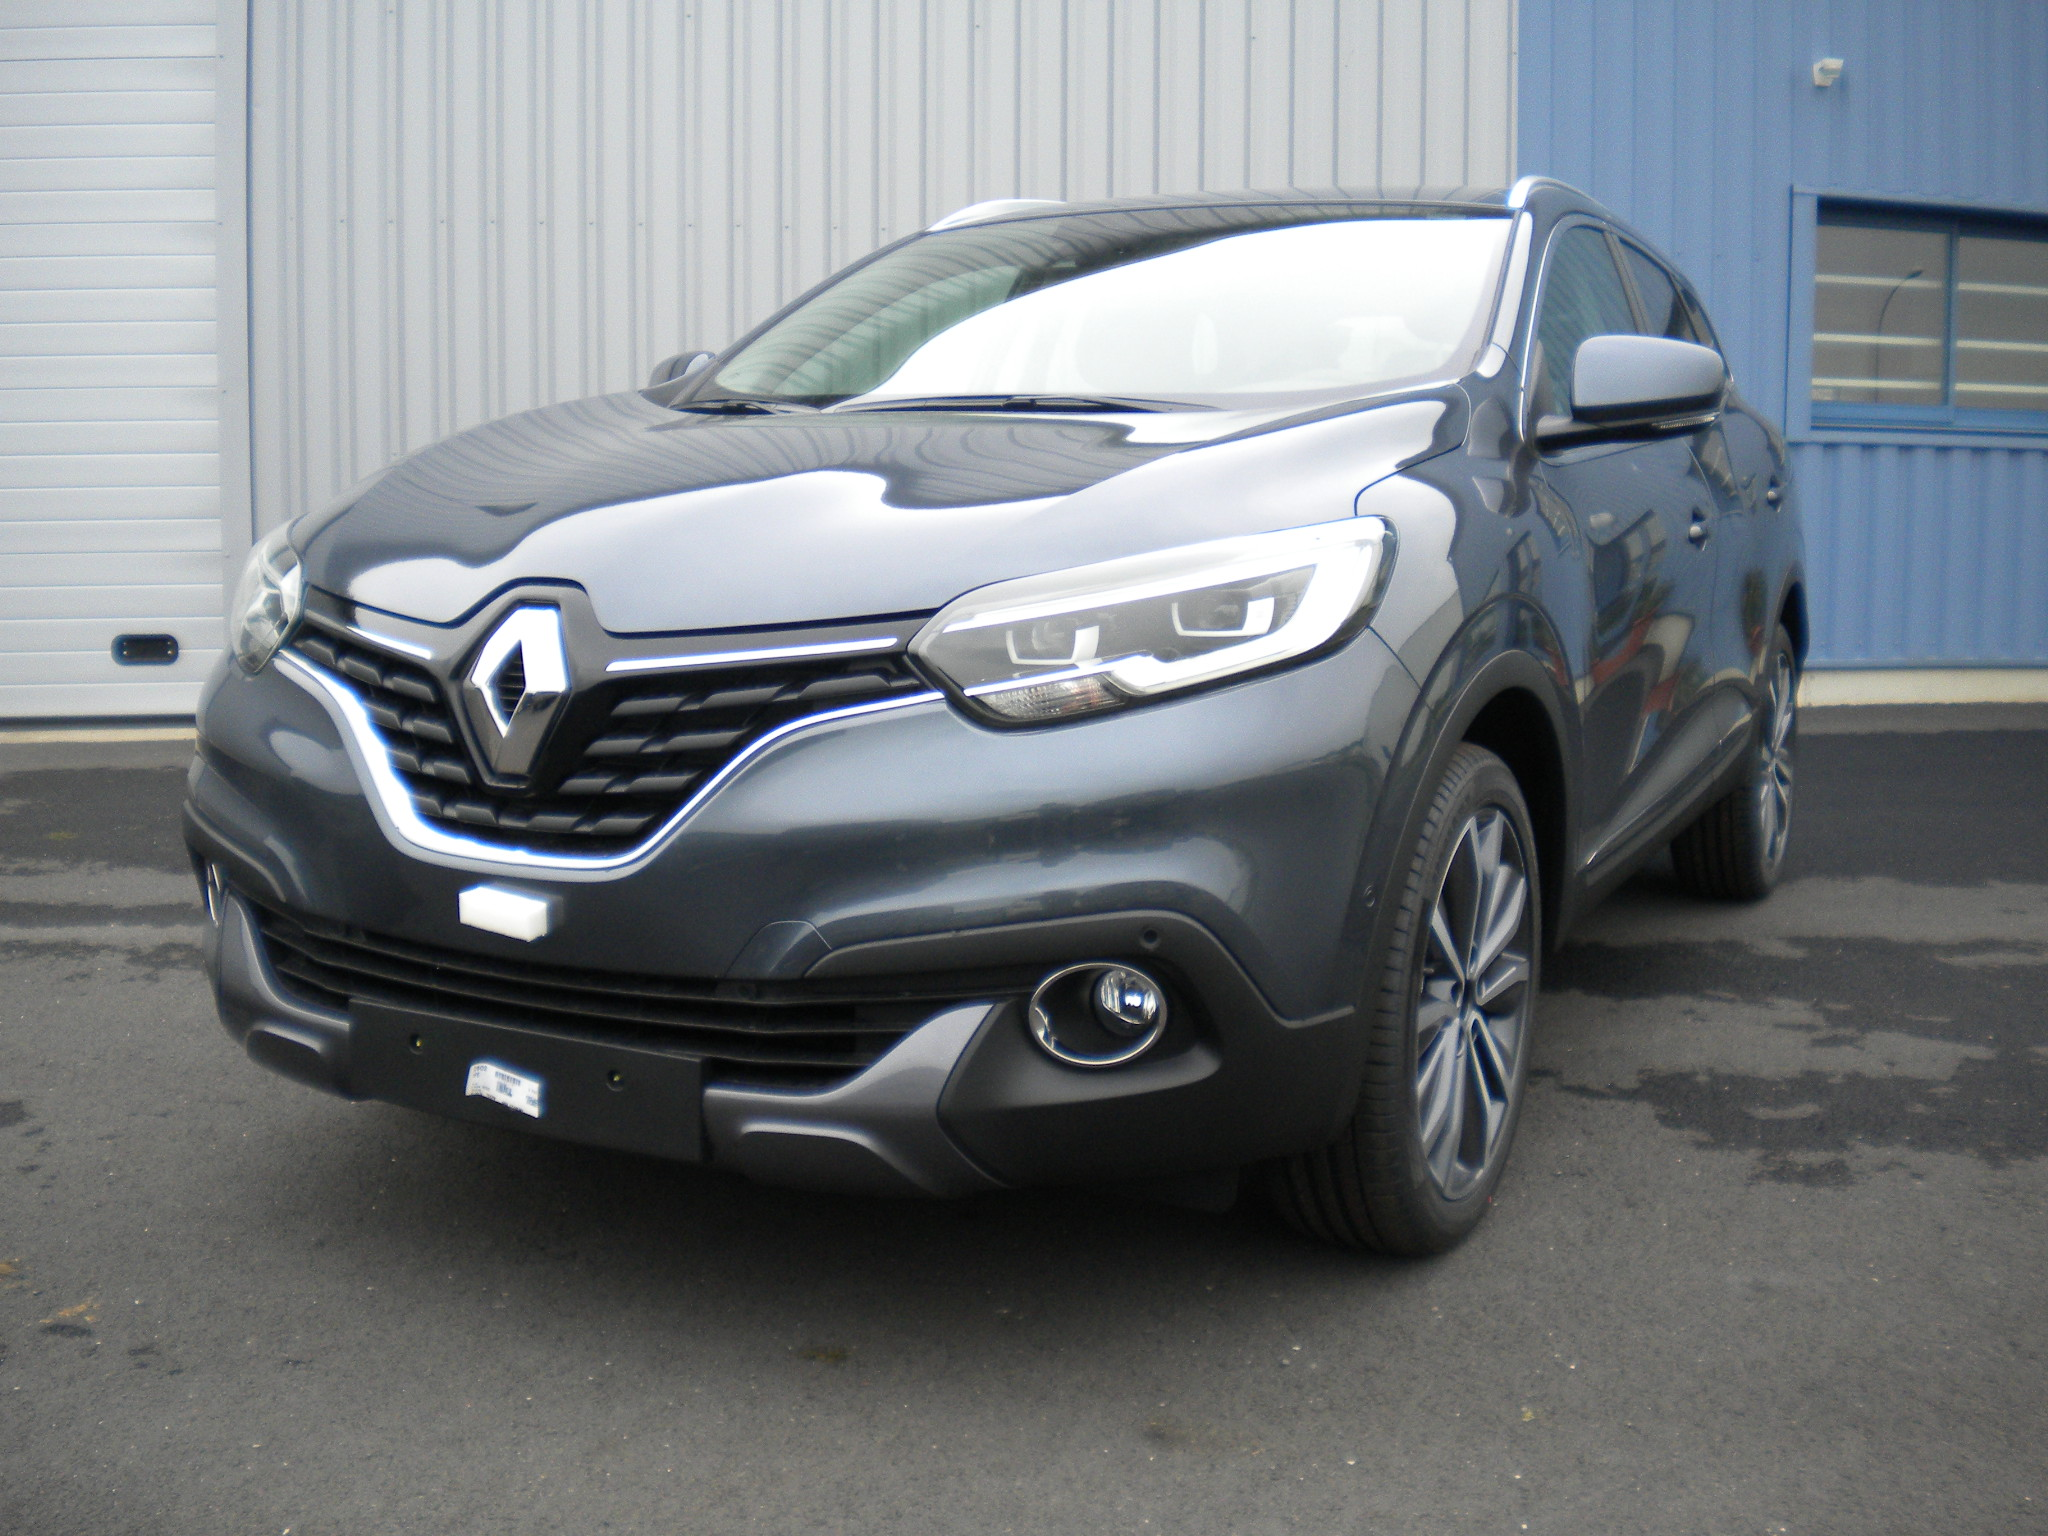 achat renault kadjar tce 130 ch intens neuf mandataire. Black Bedroom Furniture Sets. Home Design Ideas